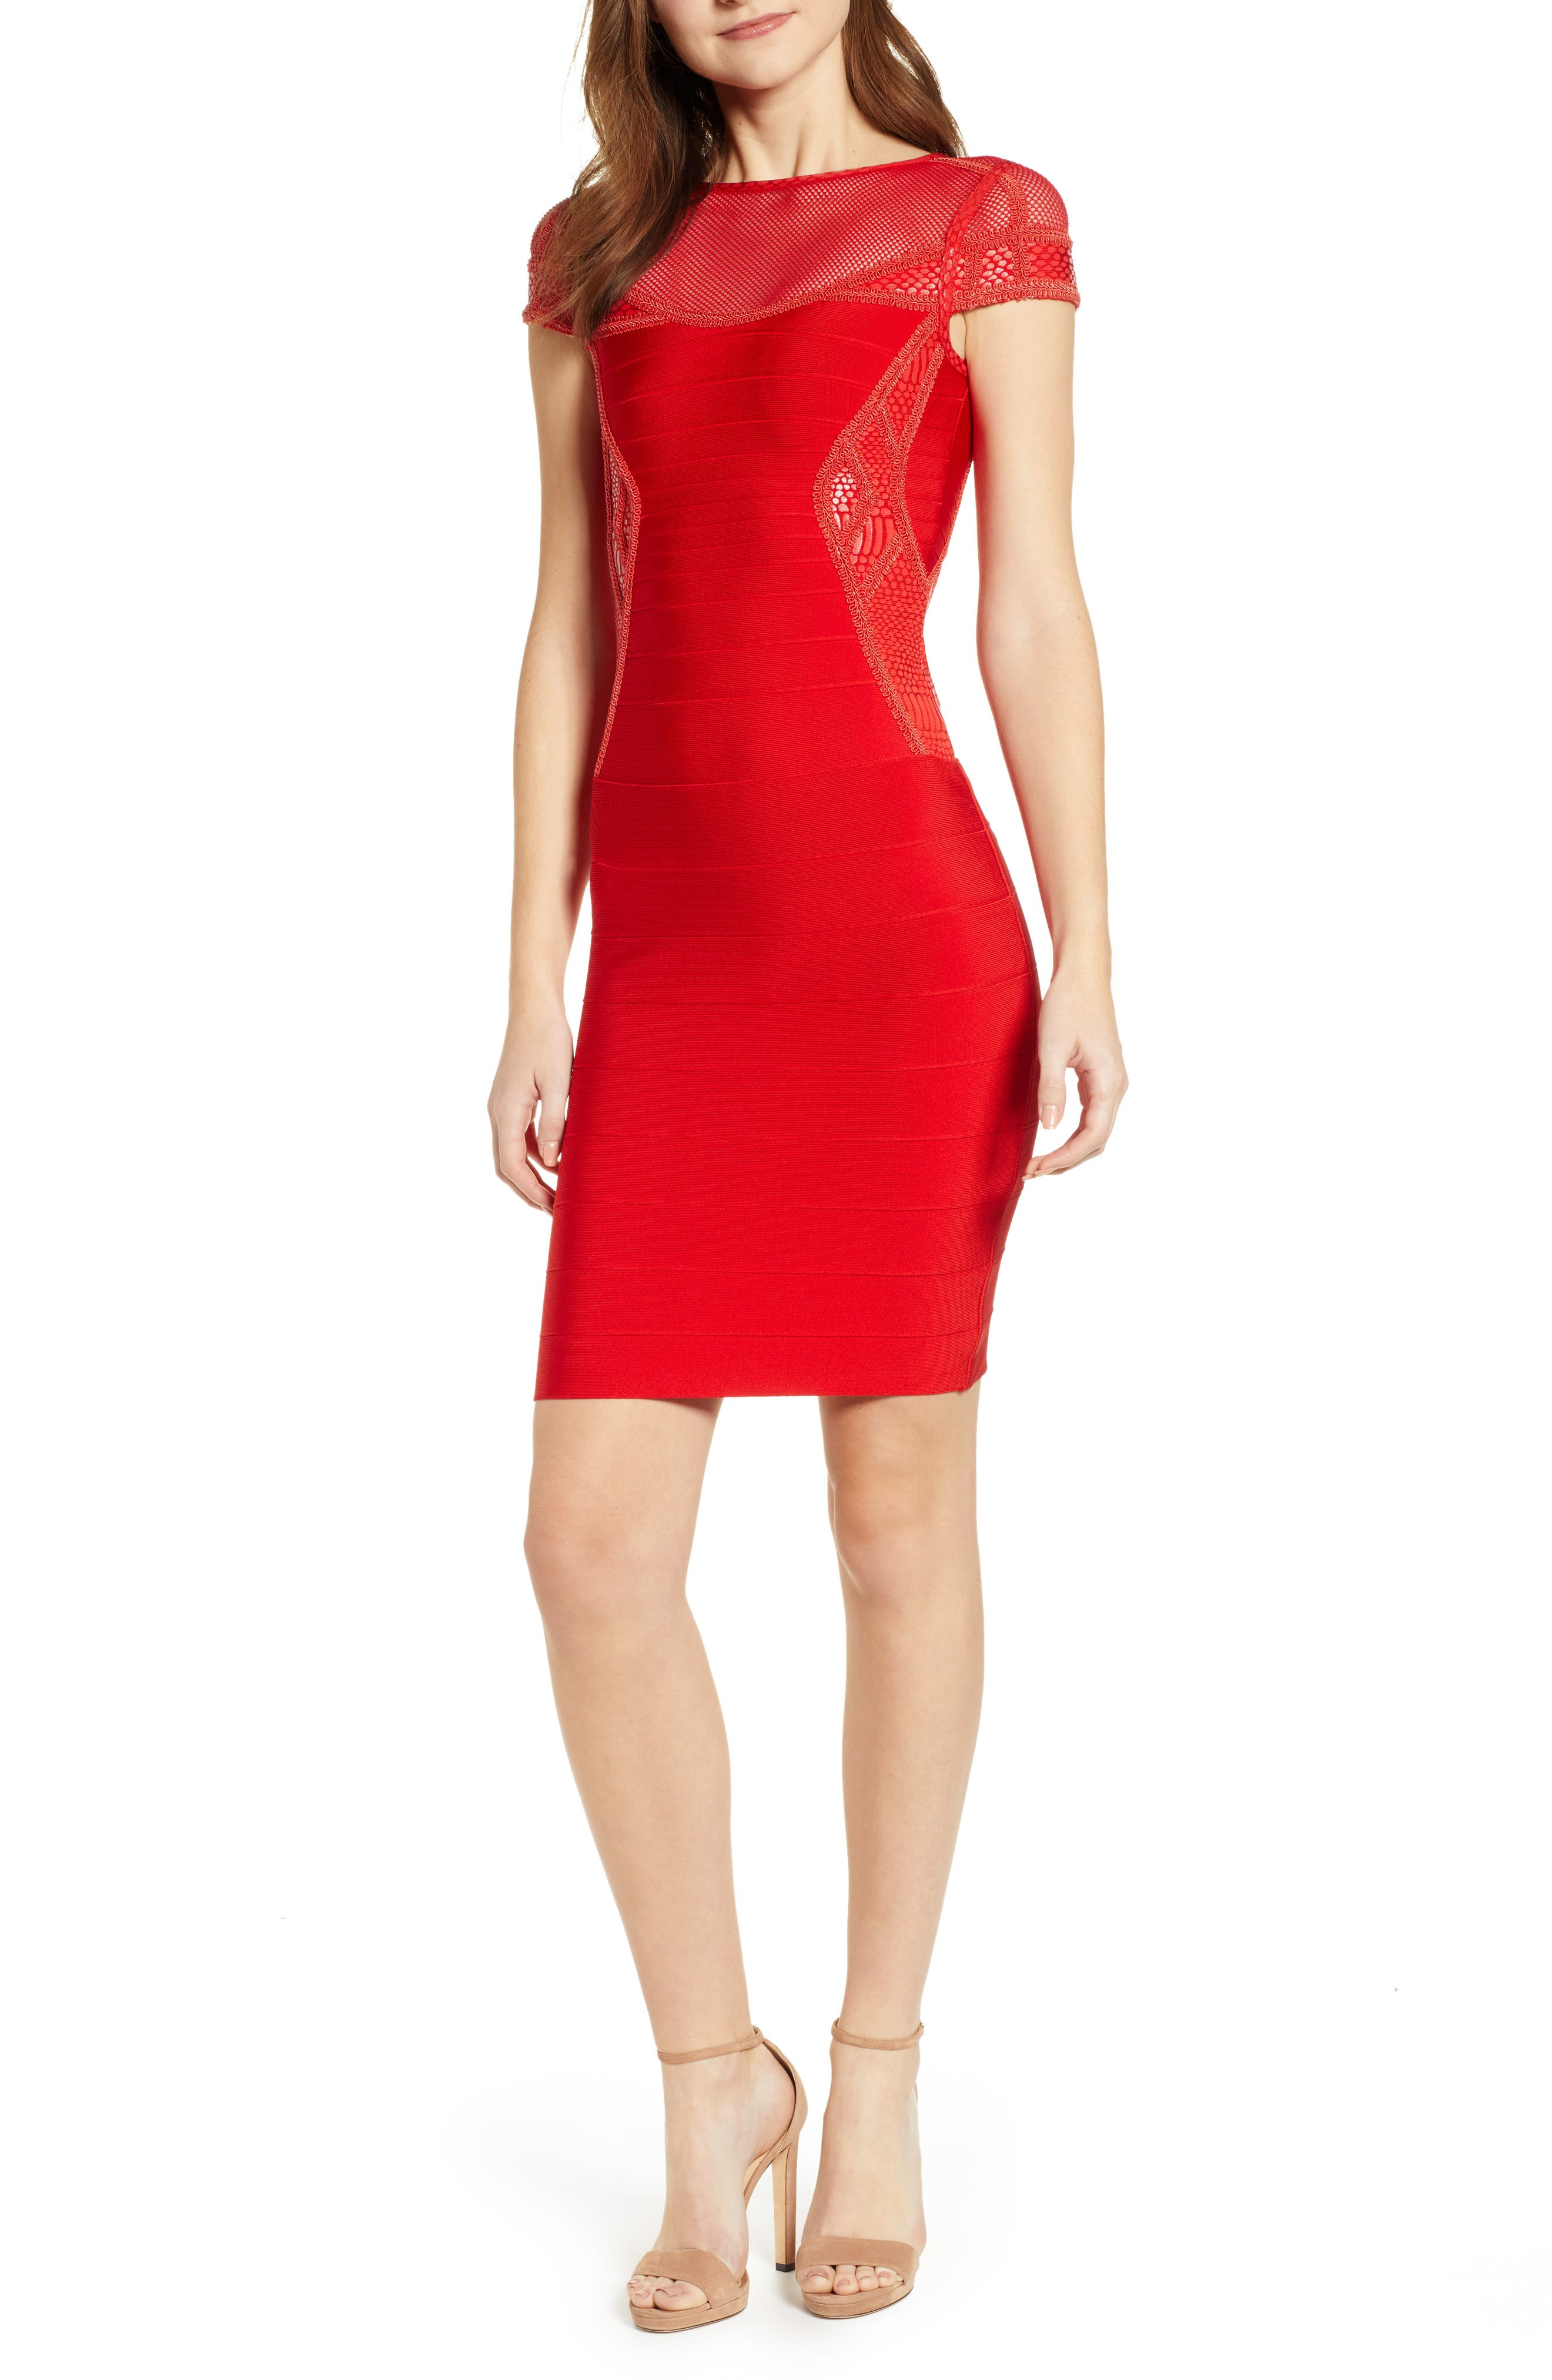 Sentimental Ny Embroidered Body-Con Dress, Red